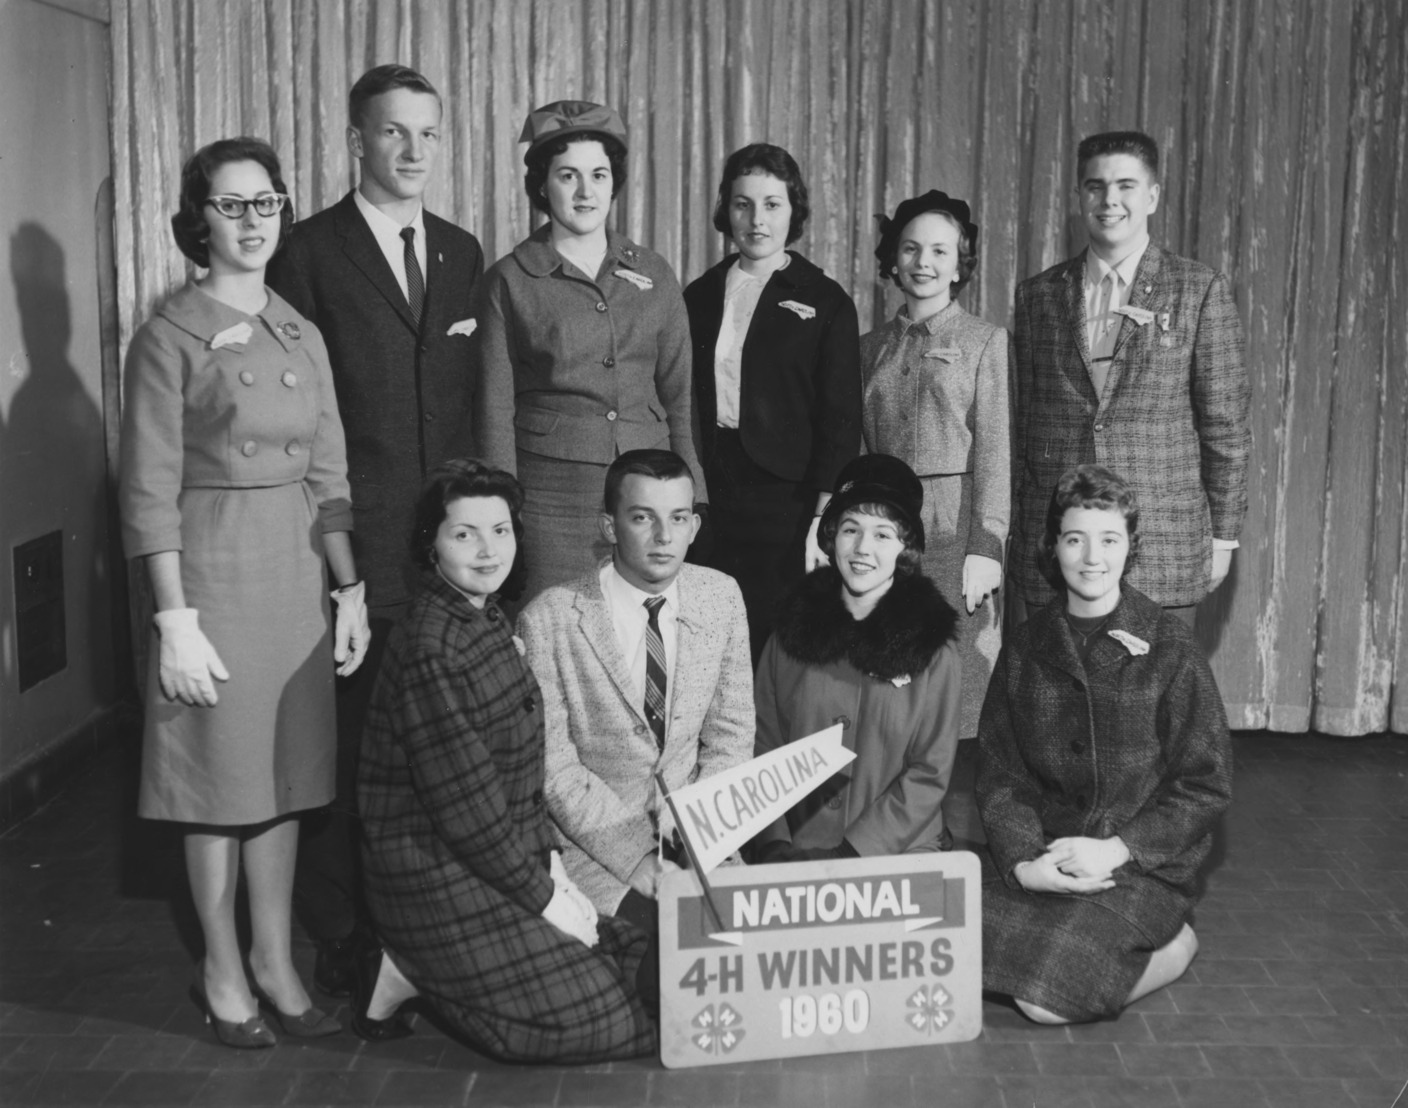 4-H Youth Development--National 4-H Winners